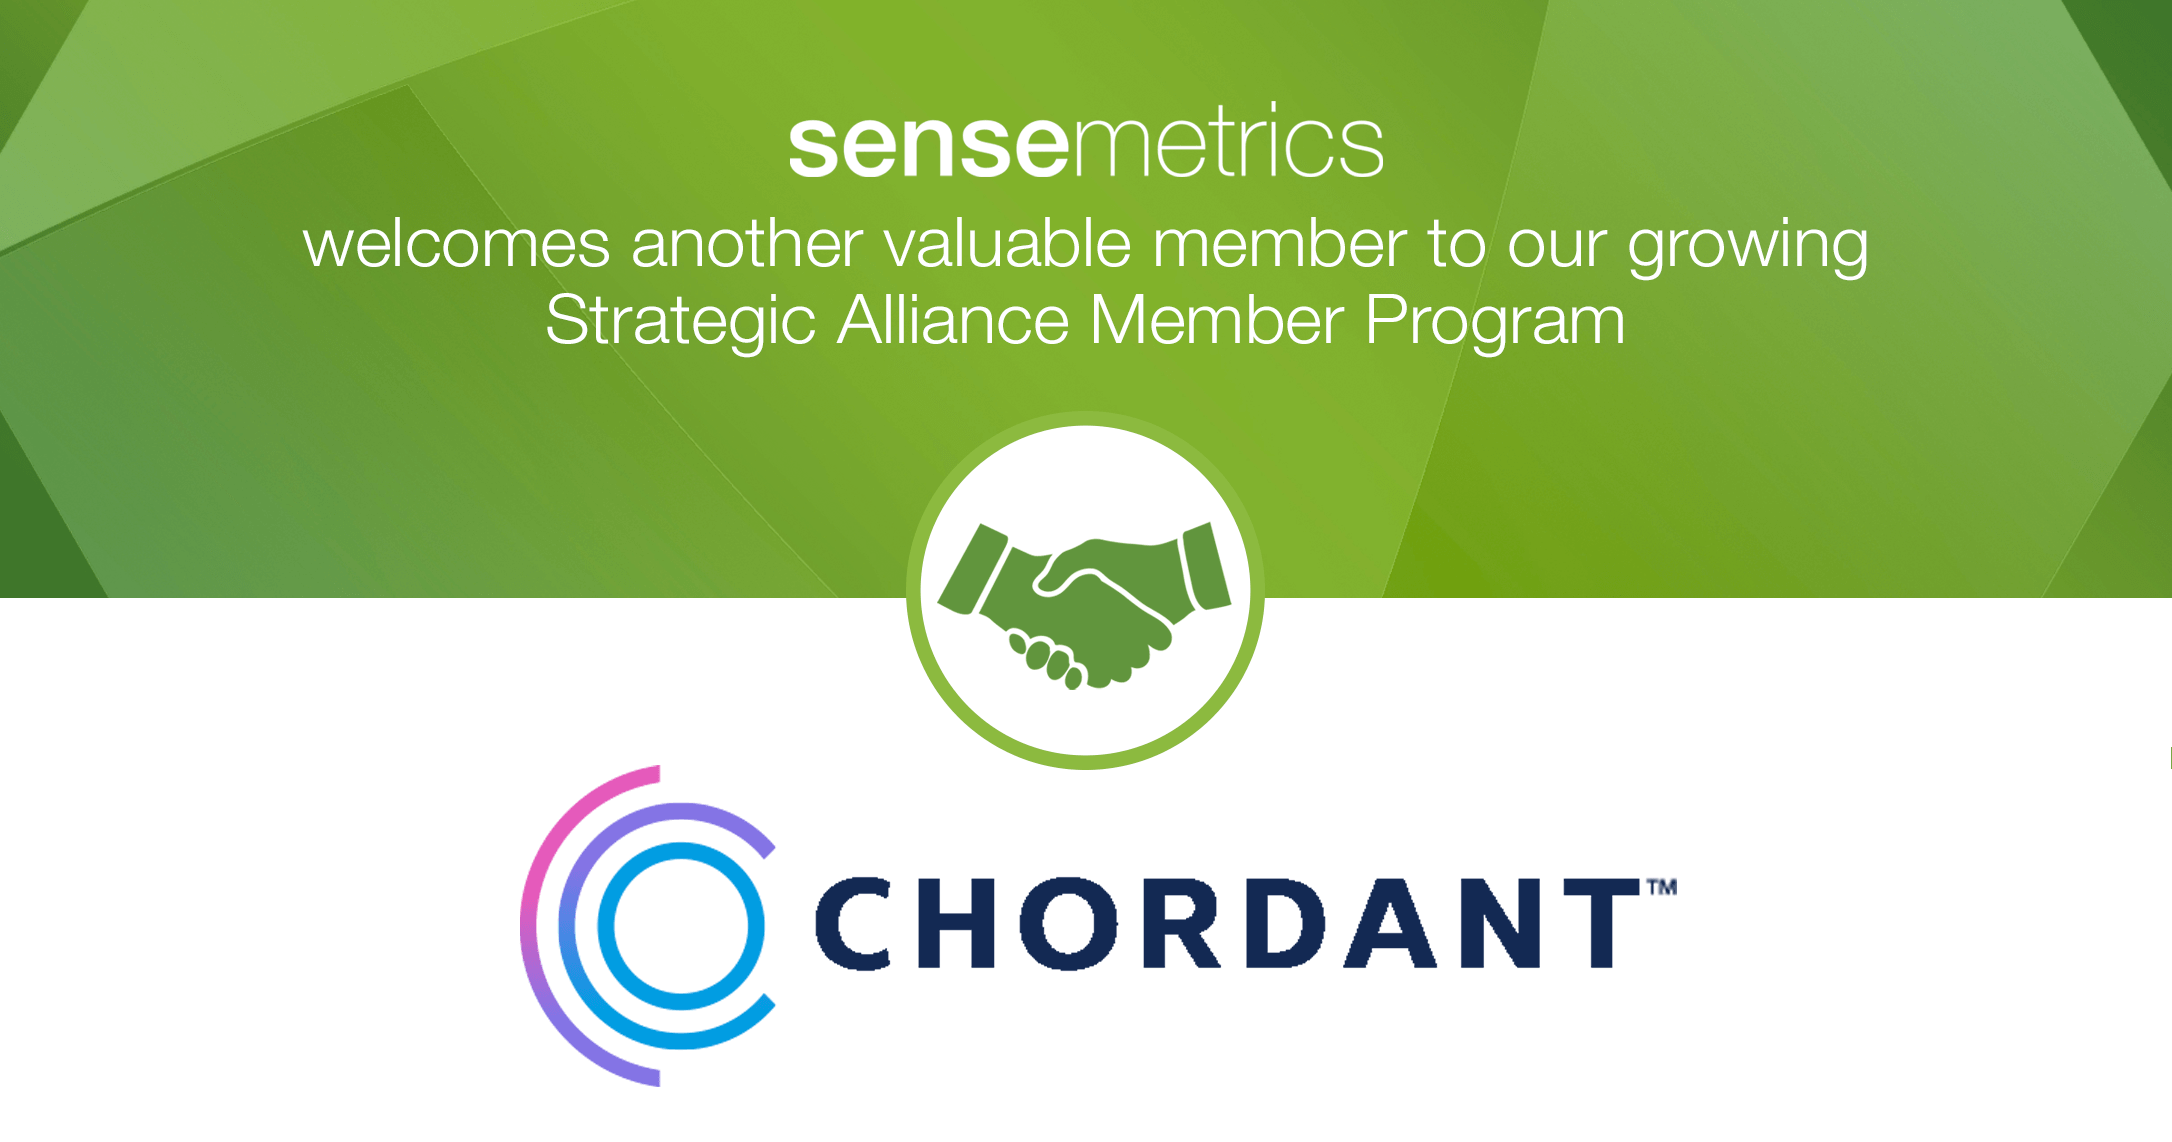 New Strategic Alliance Member: Chordant